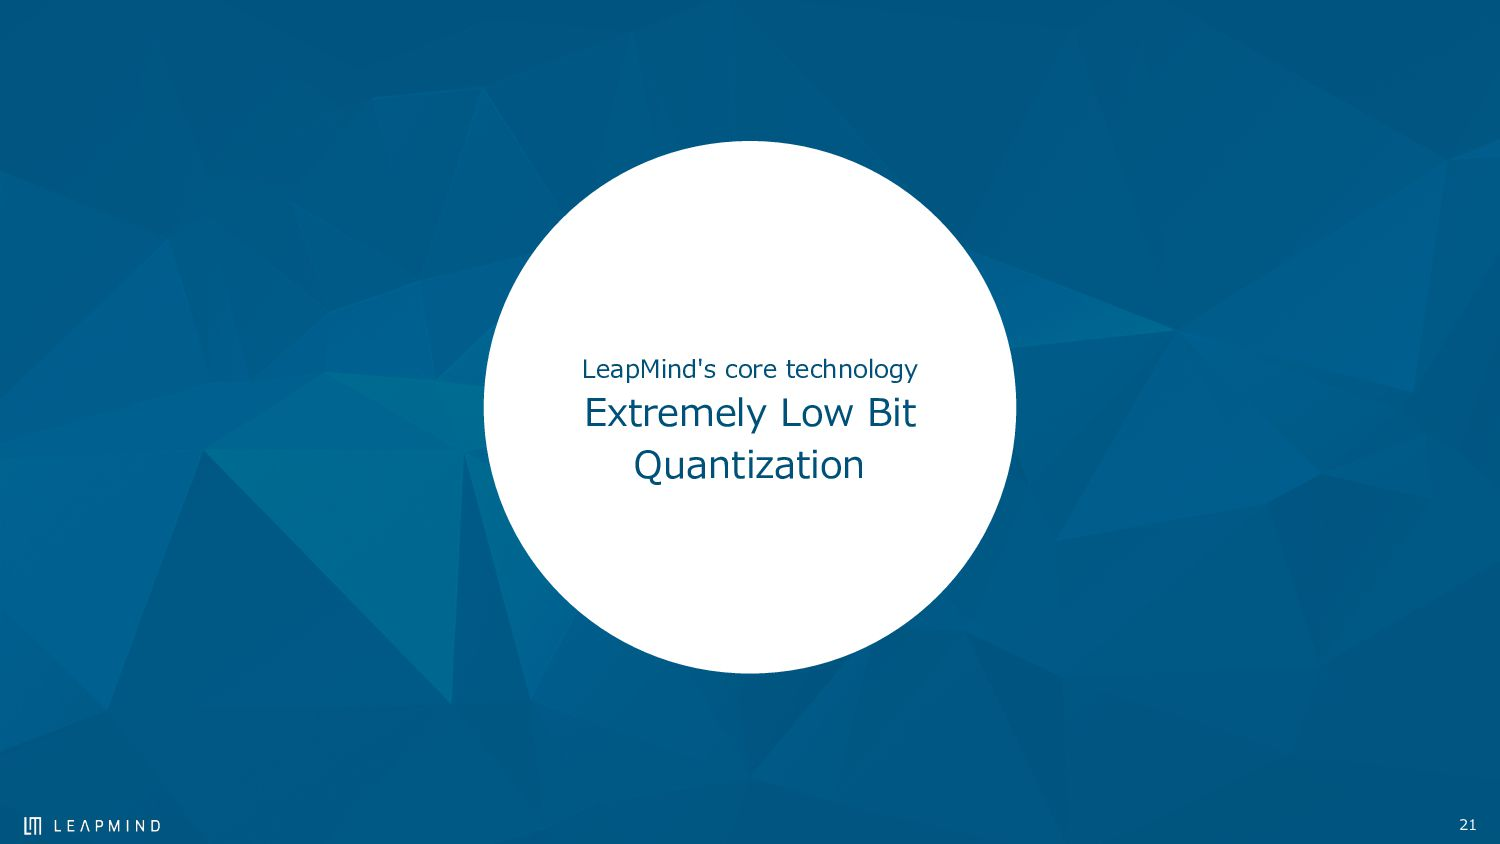 LeapMind's core technology Extremely Low Bit Qu...